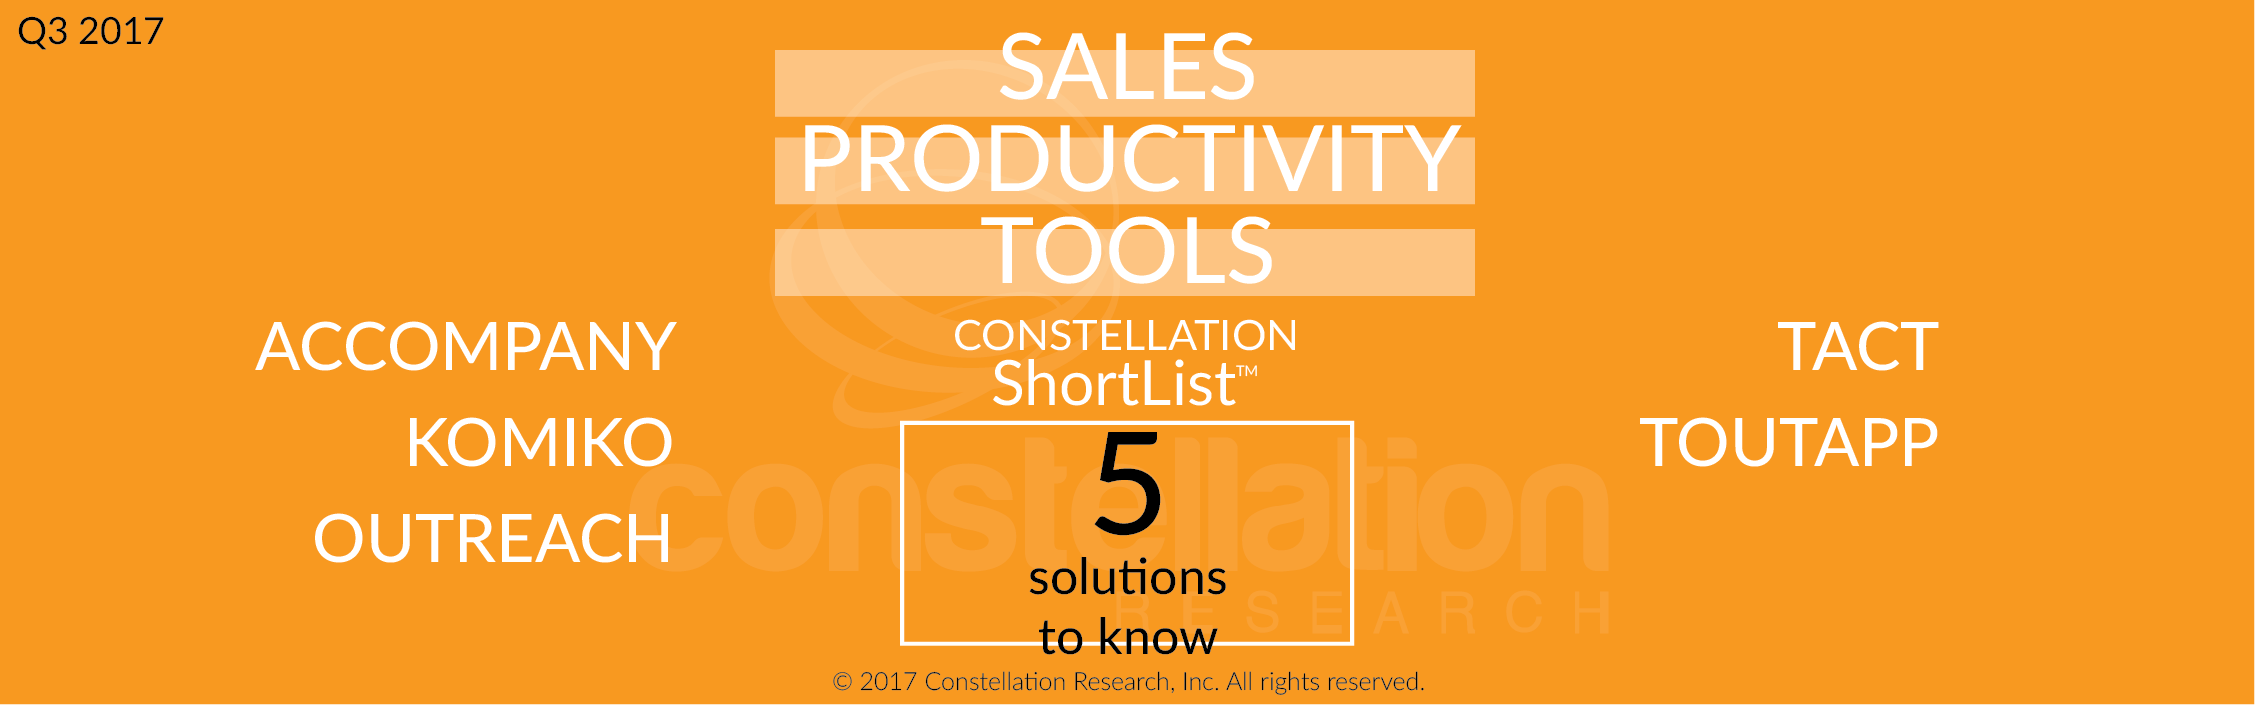 Constellation ShortList Sales Productivity Tools